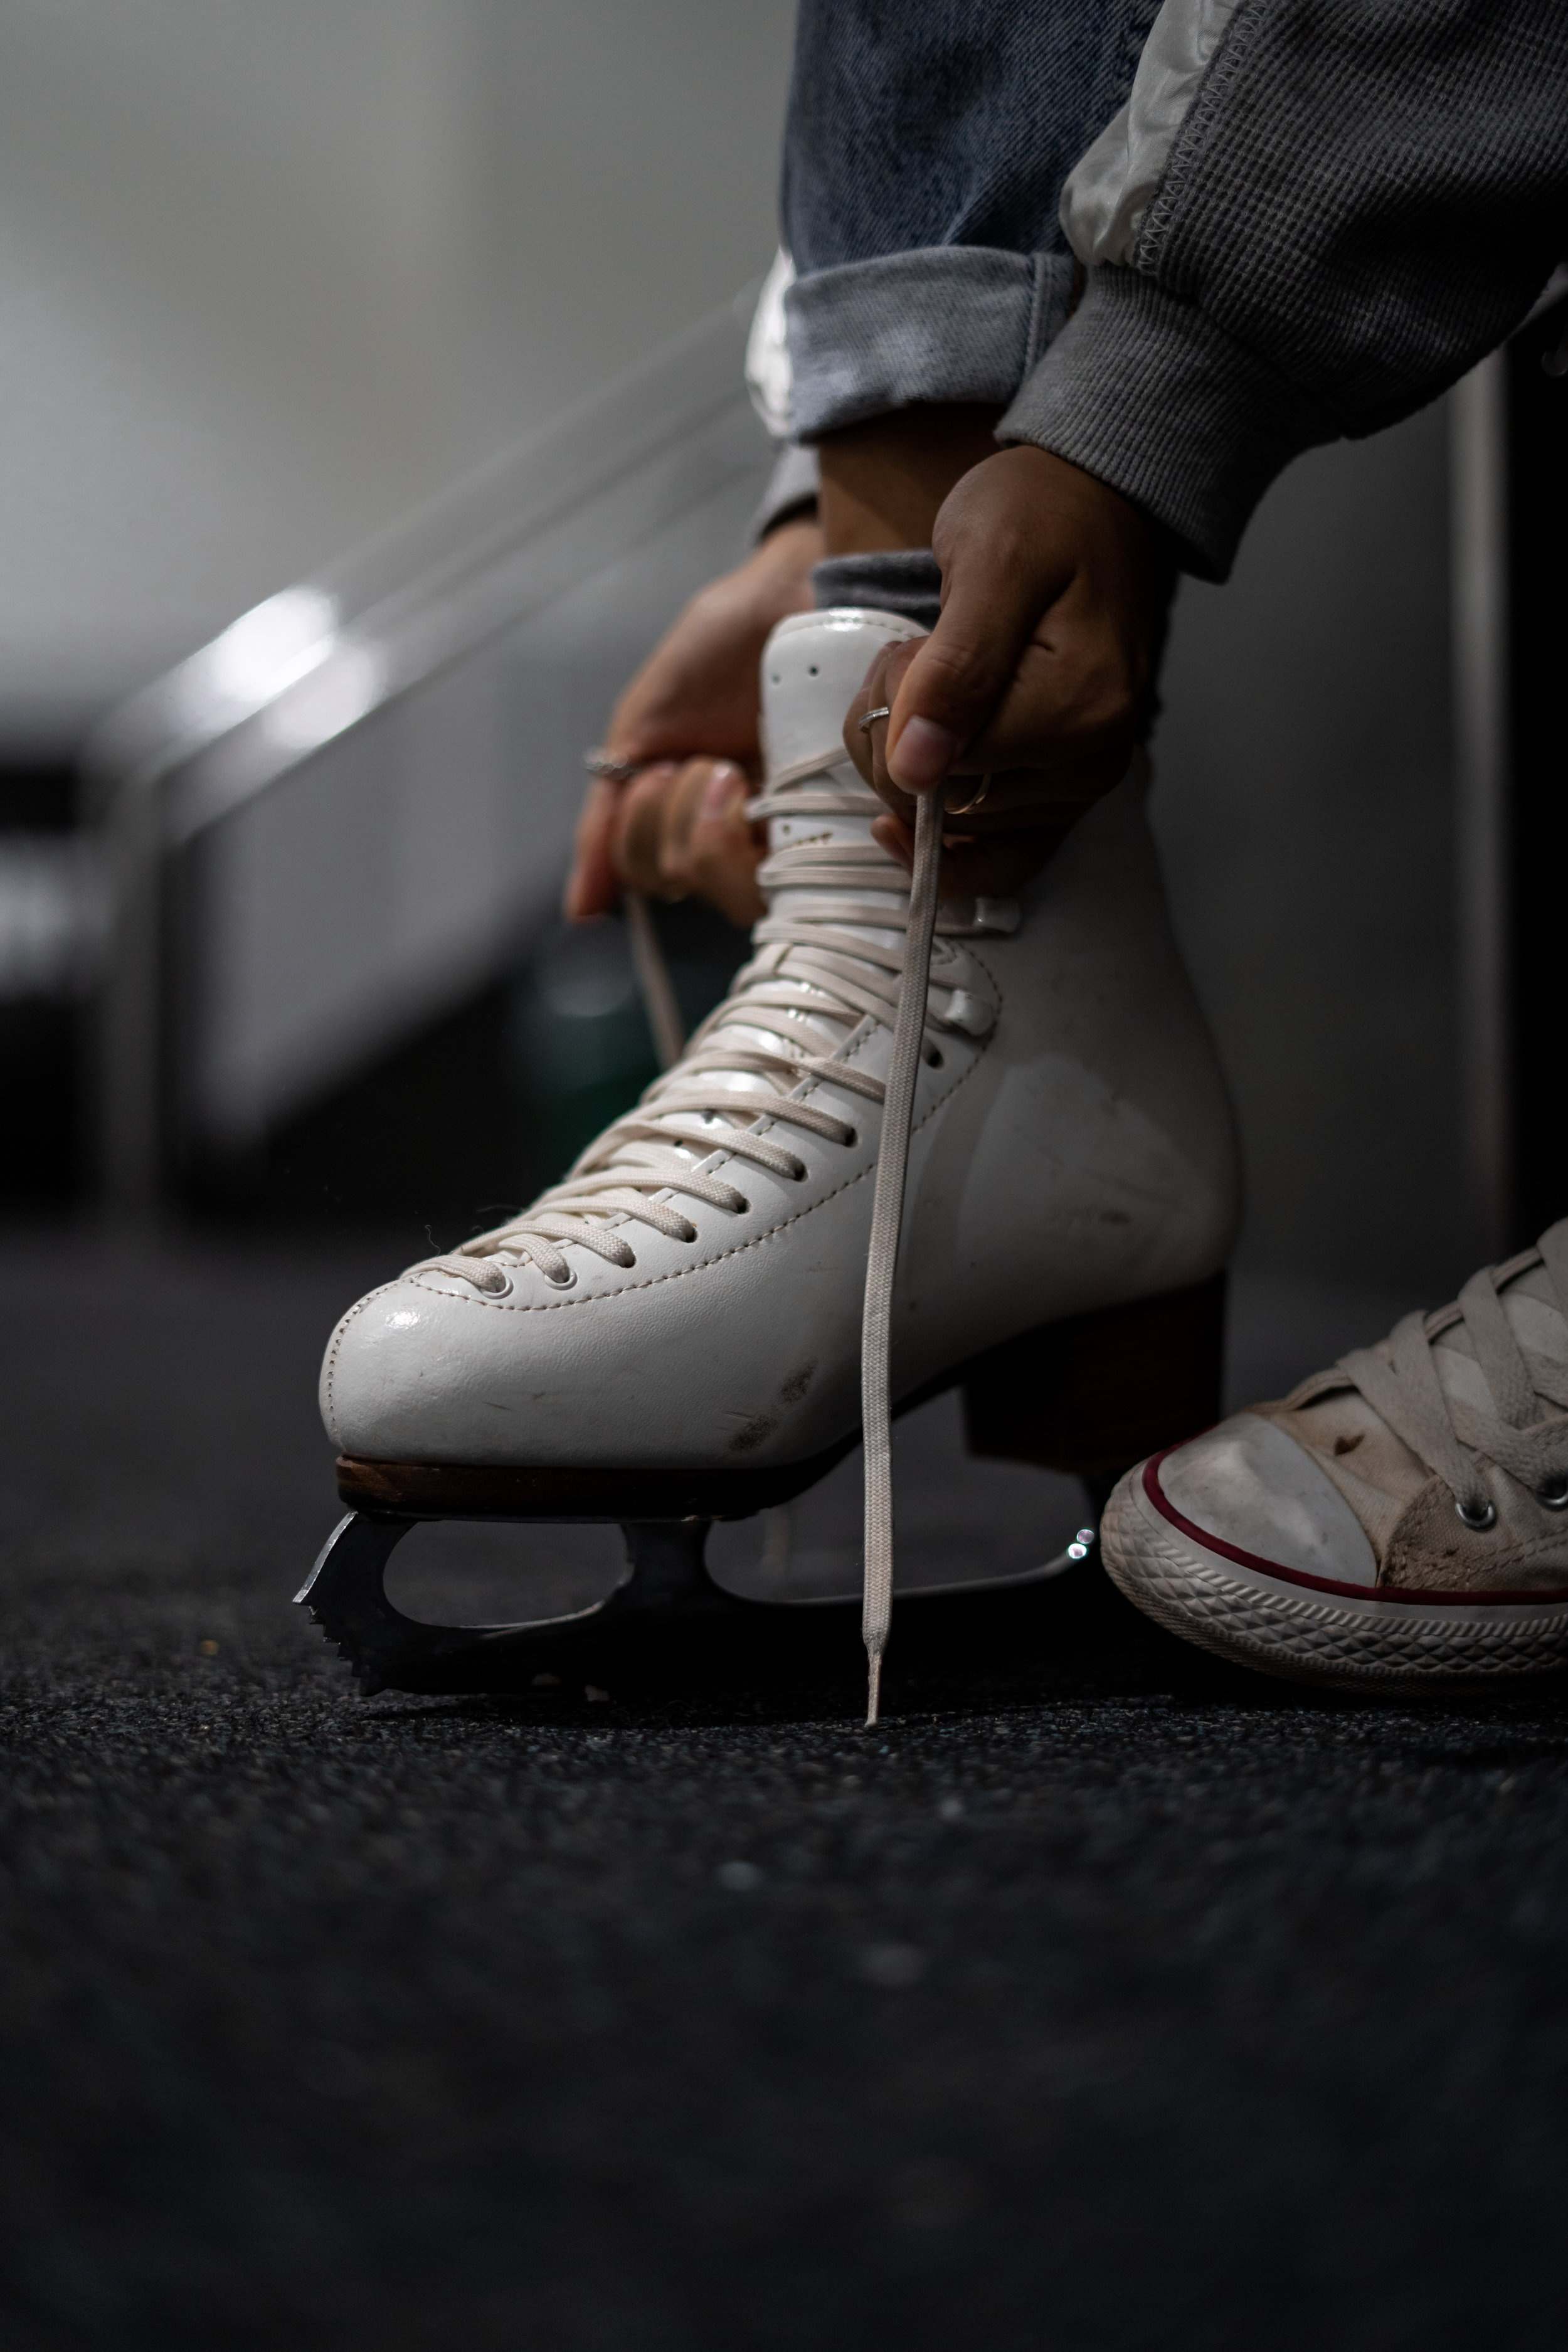 Hit the Ice - Don't have a Salchow, man. It may be hot outside but it's the perfect temperature to ice skate in the Bay Area. Glide on over to Yerba Buena, San Francisco's premier Ice Skating and Bowling Center open daily.